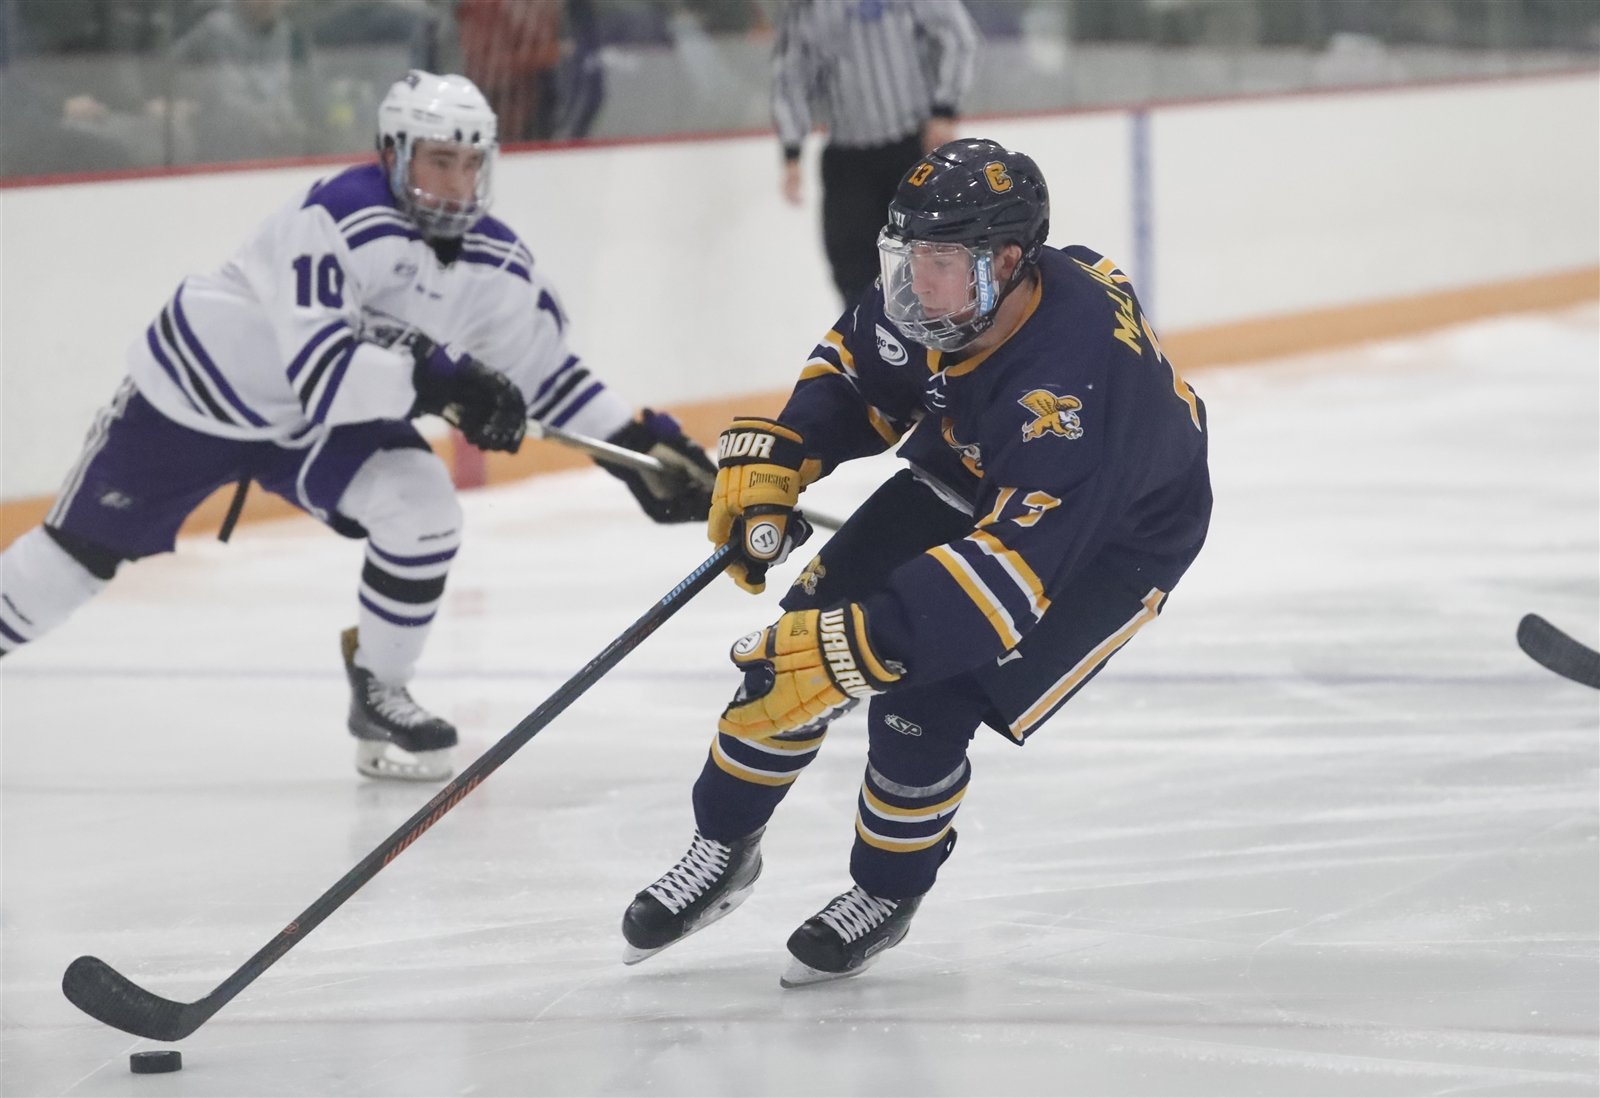 Dylan McLaughlin notched his 100th point for Canisius. (Harry Scull Jr./Buffalo News File Photo)